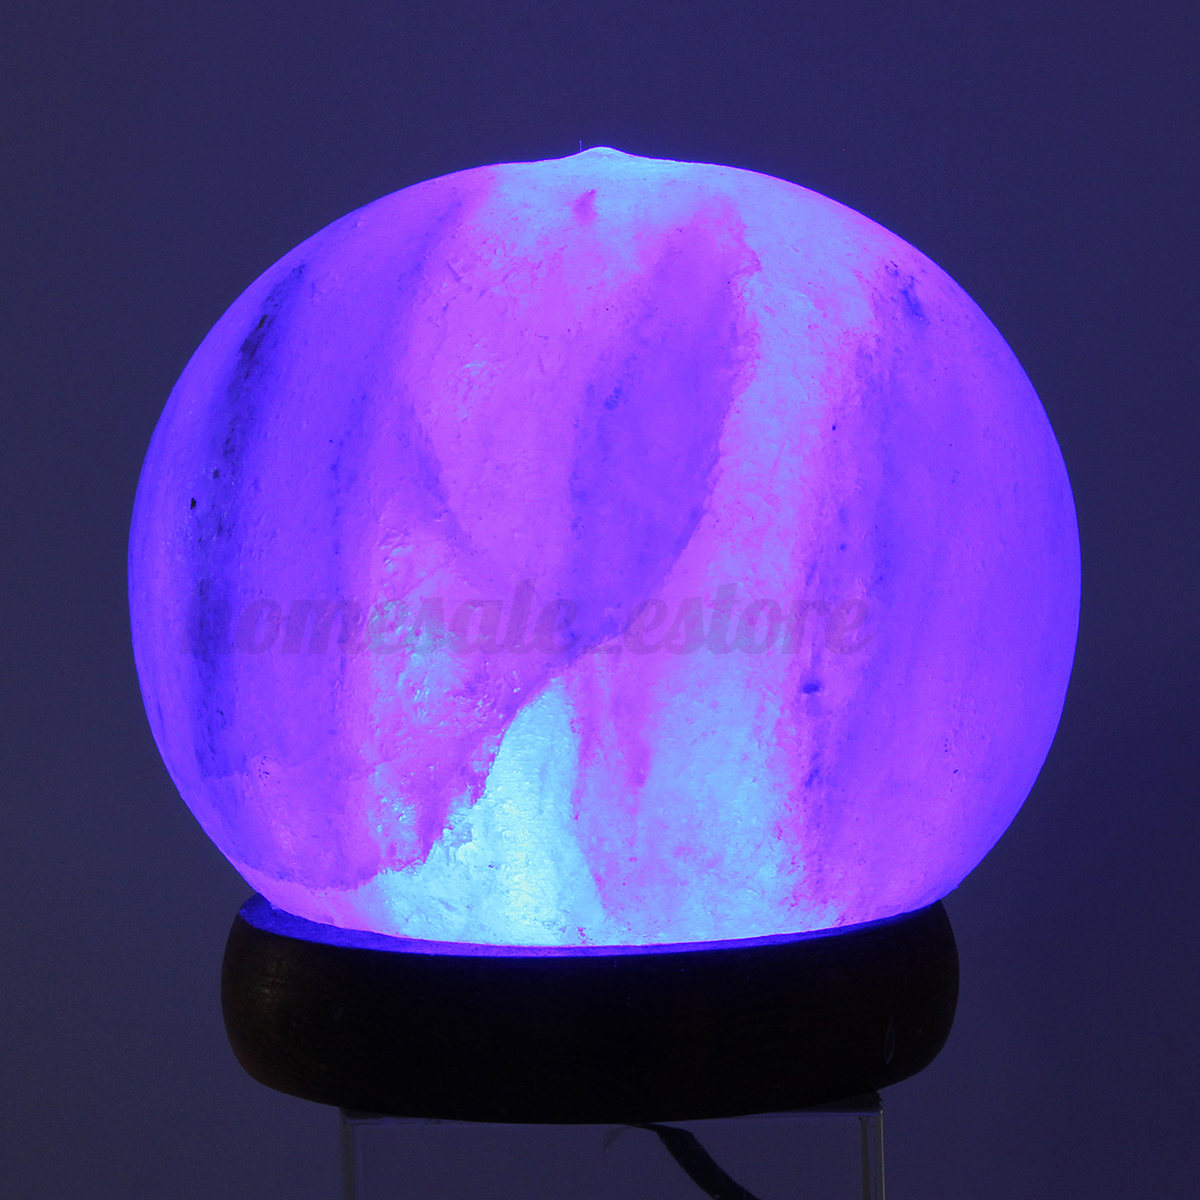 Himalayan Salt Lamp Led Bulbs : Himalayan Salt Table Lamp Crystal Rock Globe USB 7 Color Changing LED Lights eBay